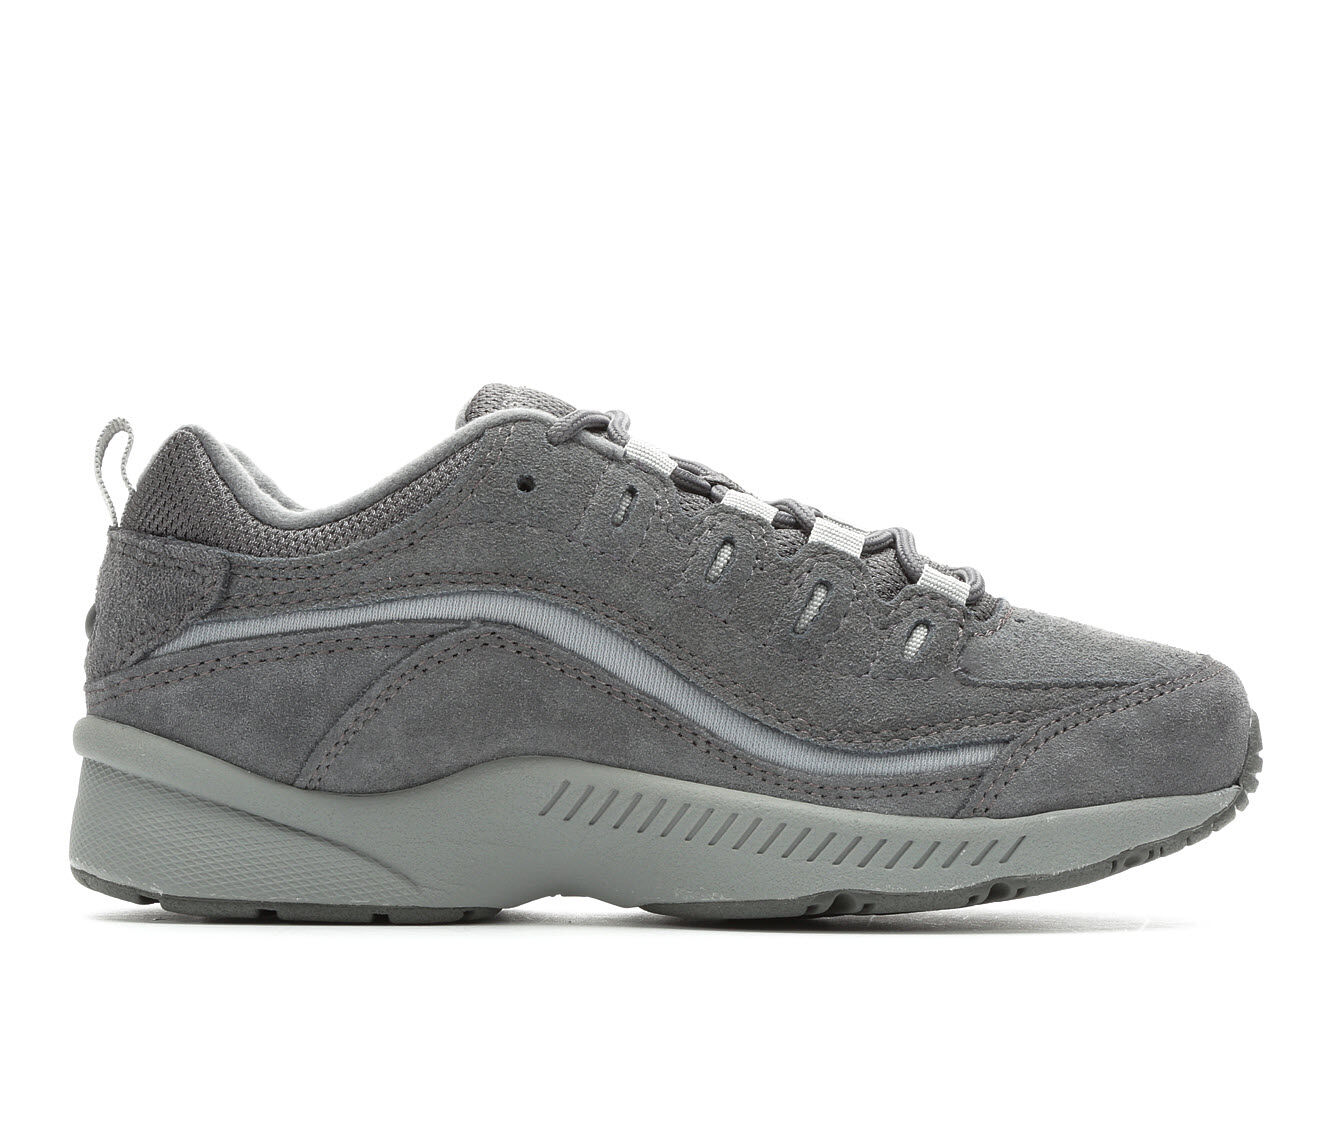 purchase comfortable Women's Easy Spirit Roadrun Charcoal